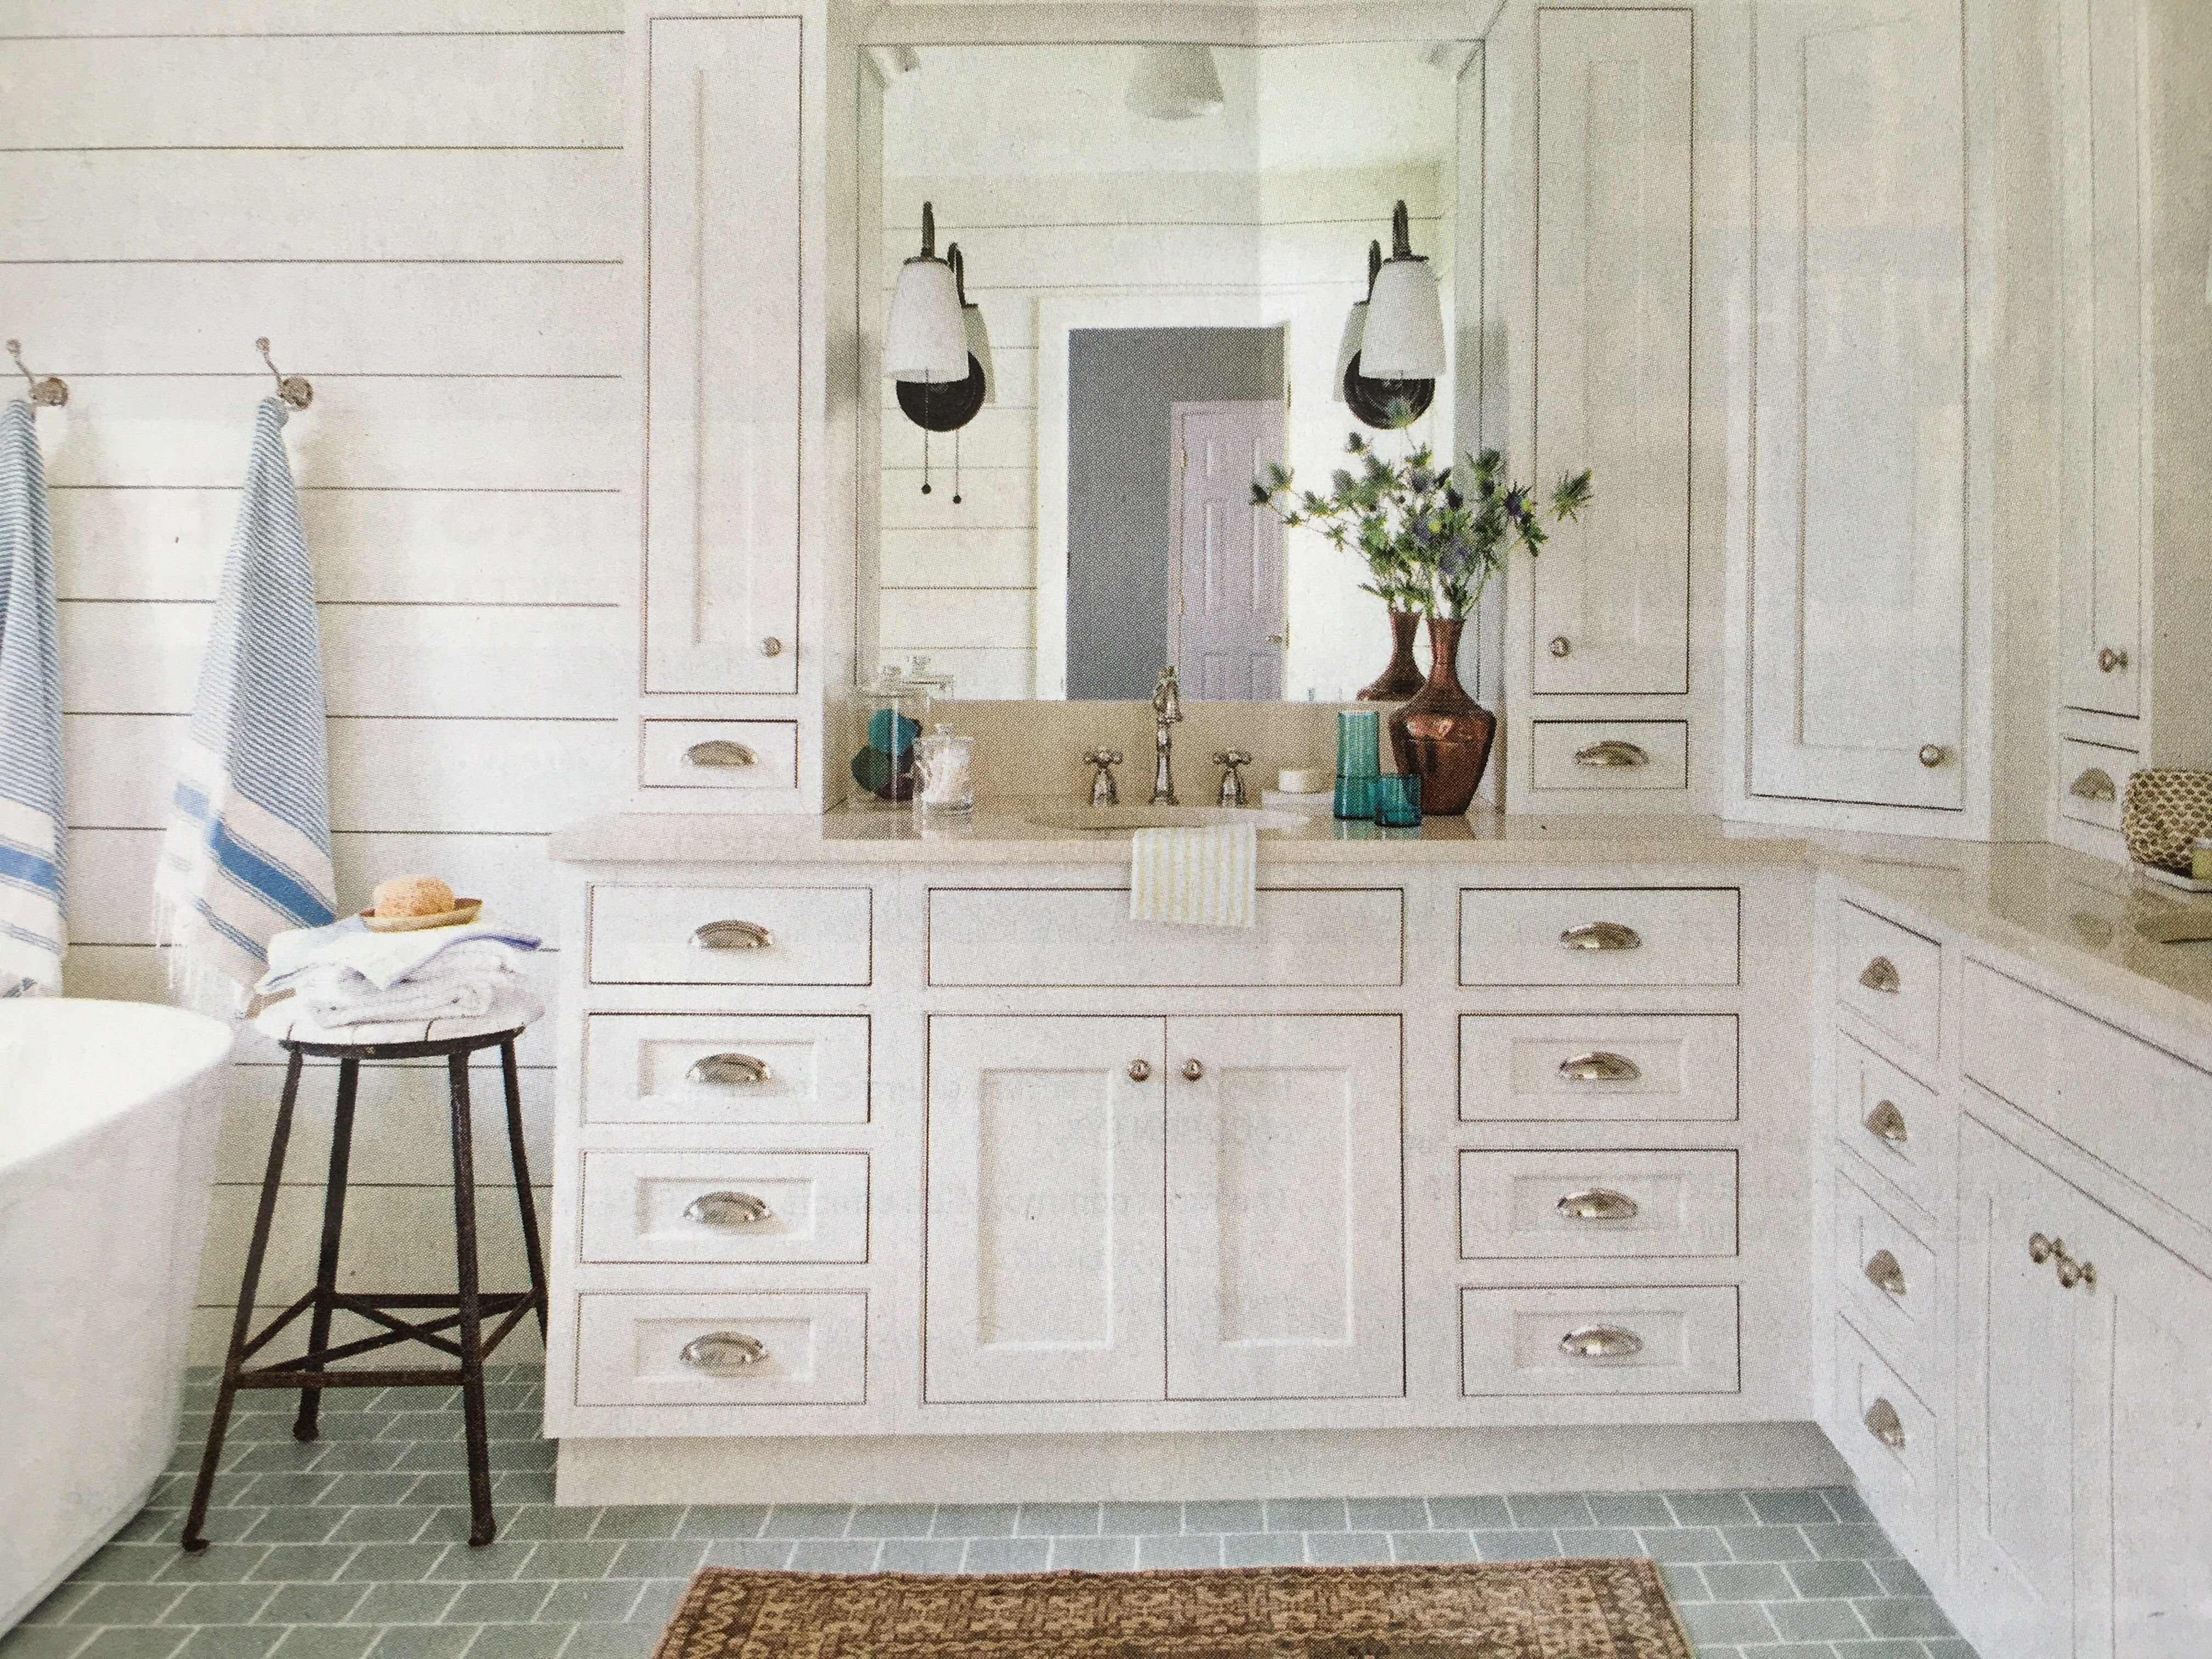 Sand color countertops, white wood cabinets, black iron fixtures and ...